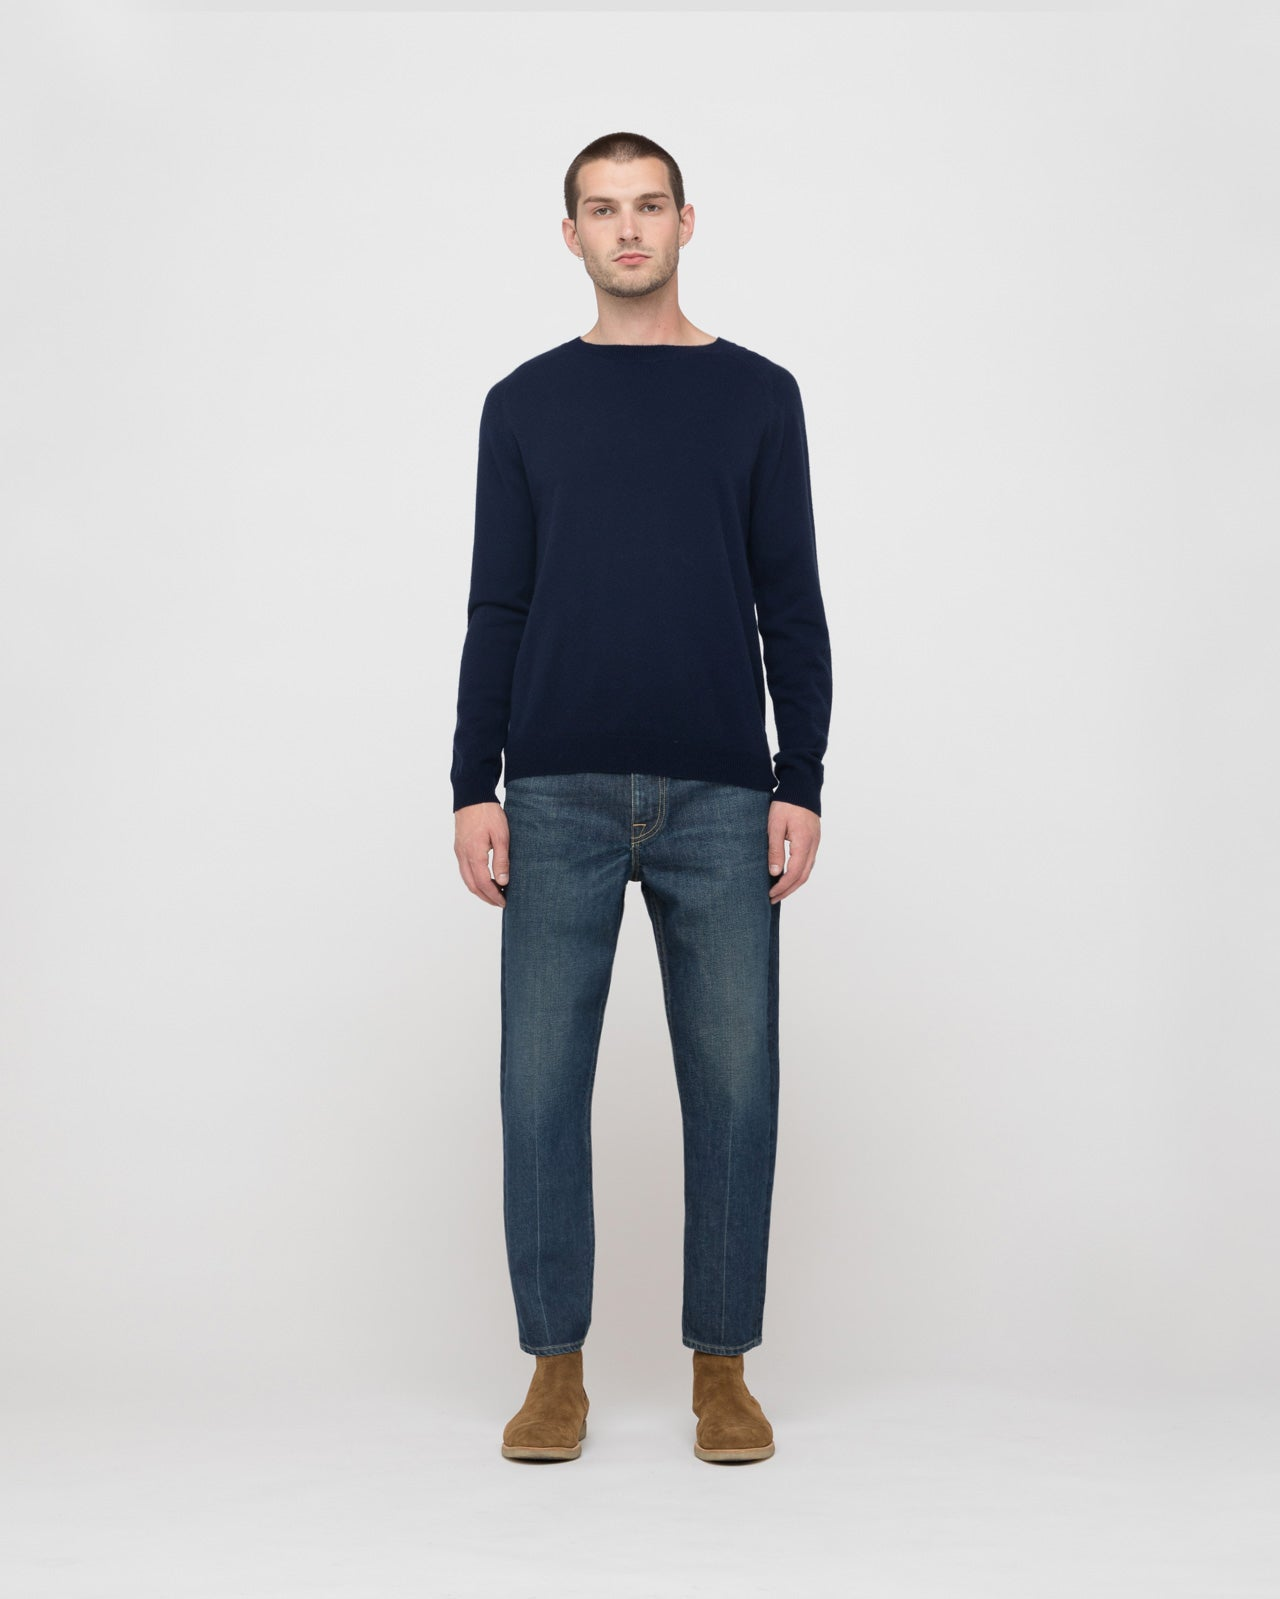 The Graham Sweater in Midnight